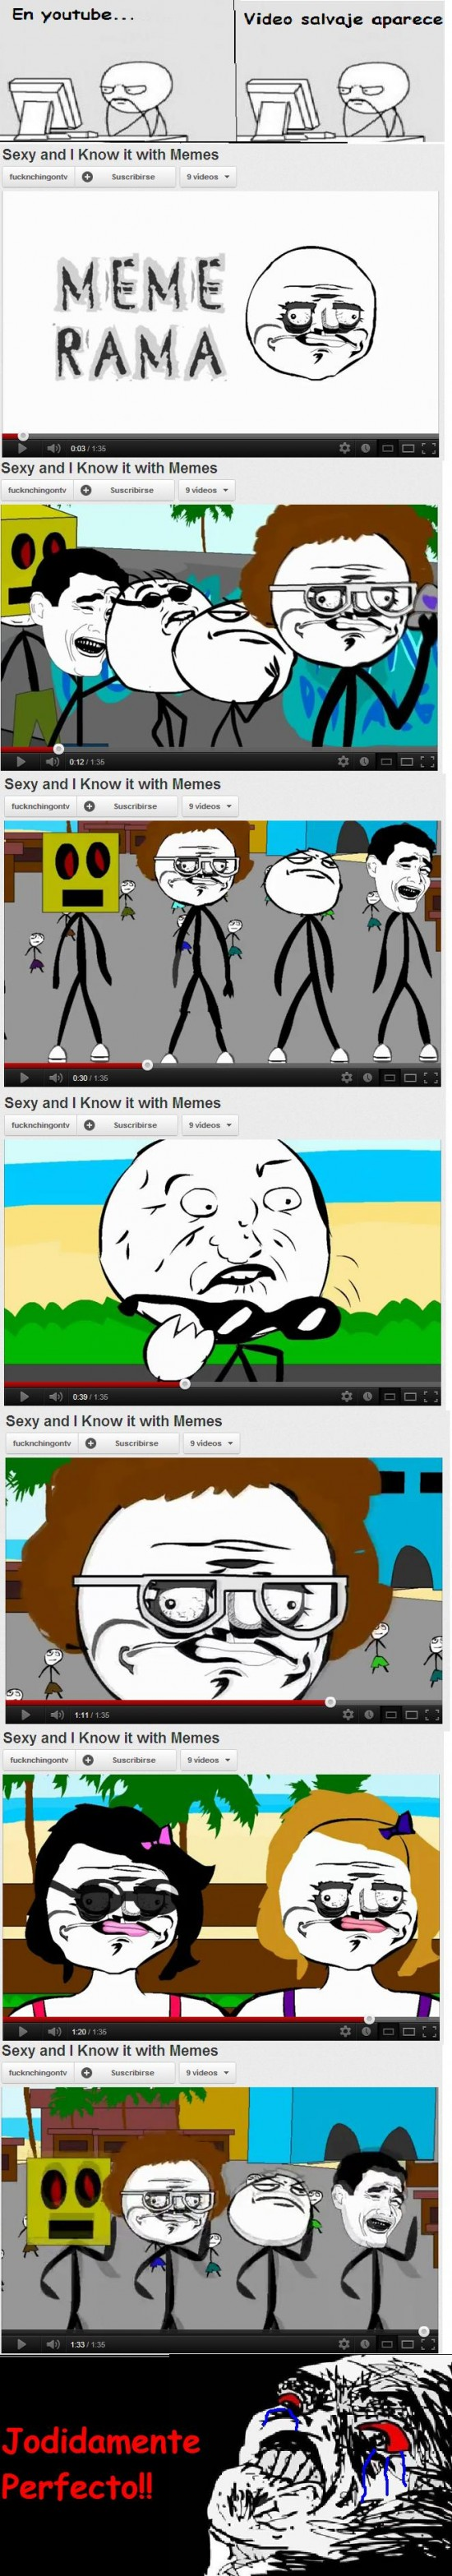 Memes,sexy and i know it,youtube